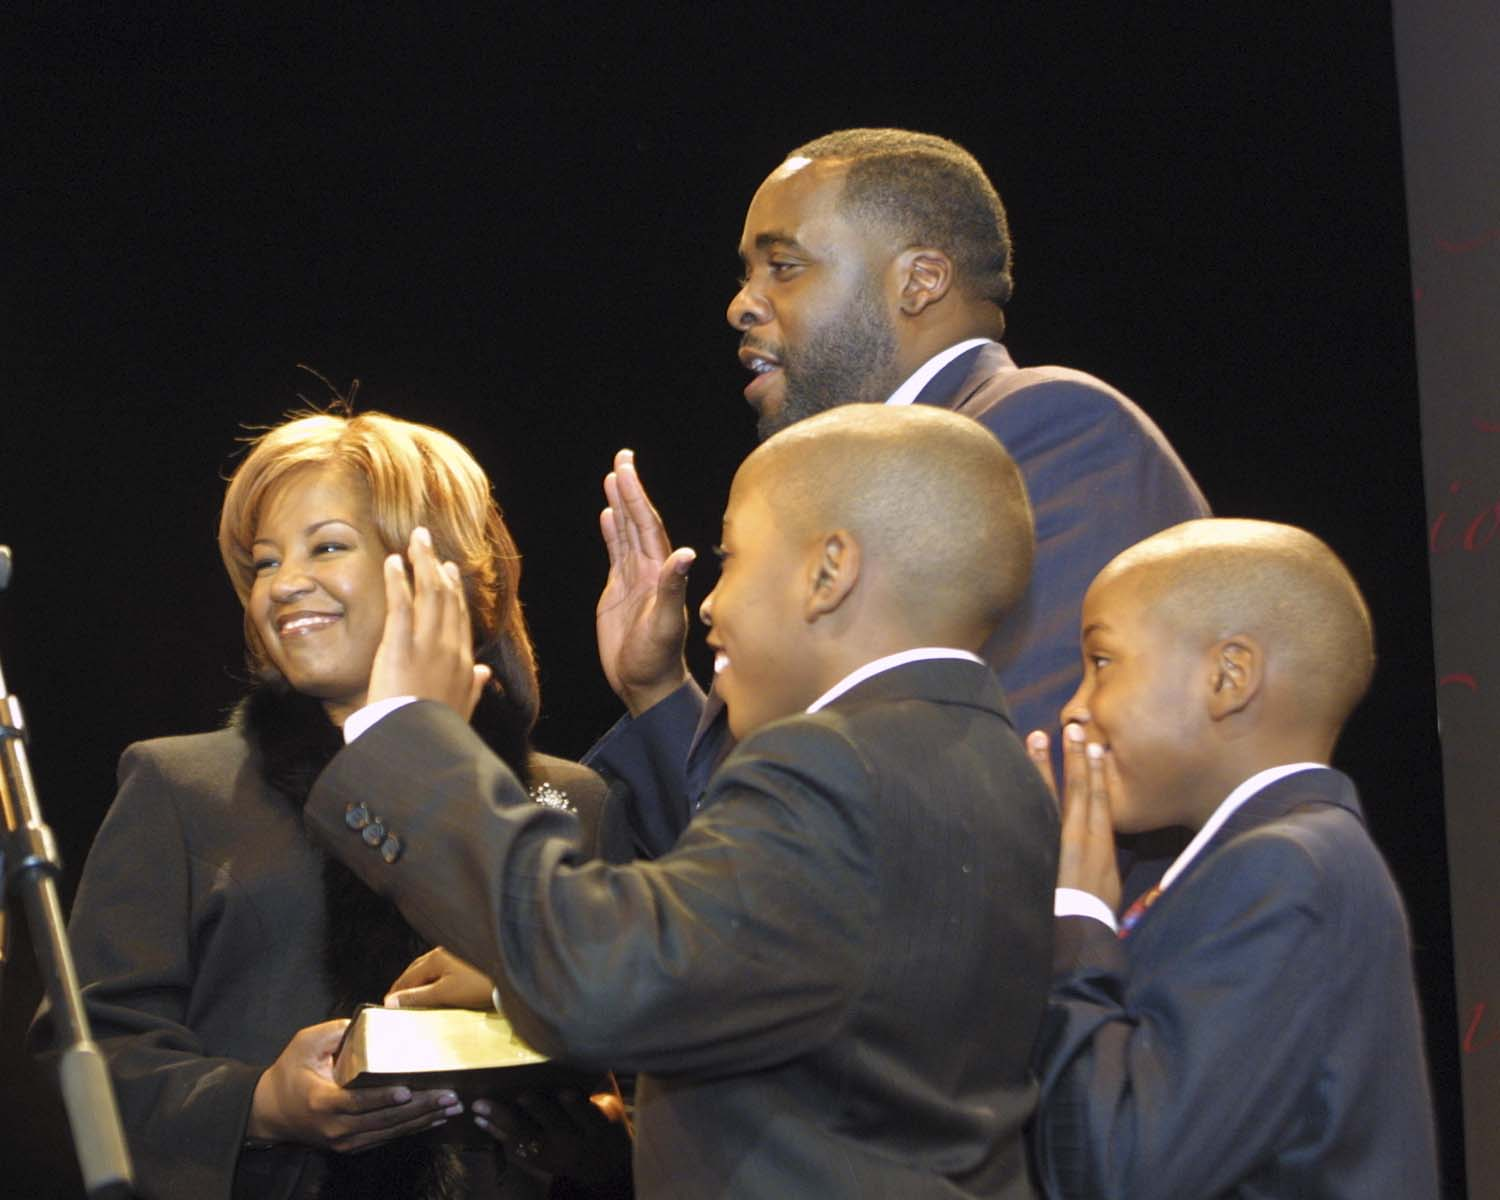 Kwame Kilpatrick with his wife Carlita and their twin sons Jelani and Jalil at Kwame's swearing-in ceremony during the 2006 inauguration. Kwame's relationship with Carlita grew strained due to his demanding schedule. But during the 2005 election, the couple decided to work on fixing their marriage, and Kwame says that broke off his affair with Christine.  Courtesy of Tim and Tobias Smith.